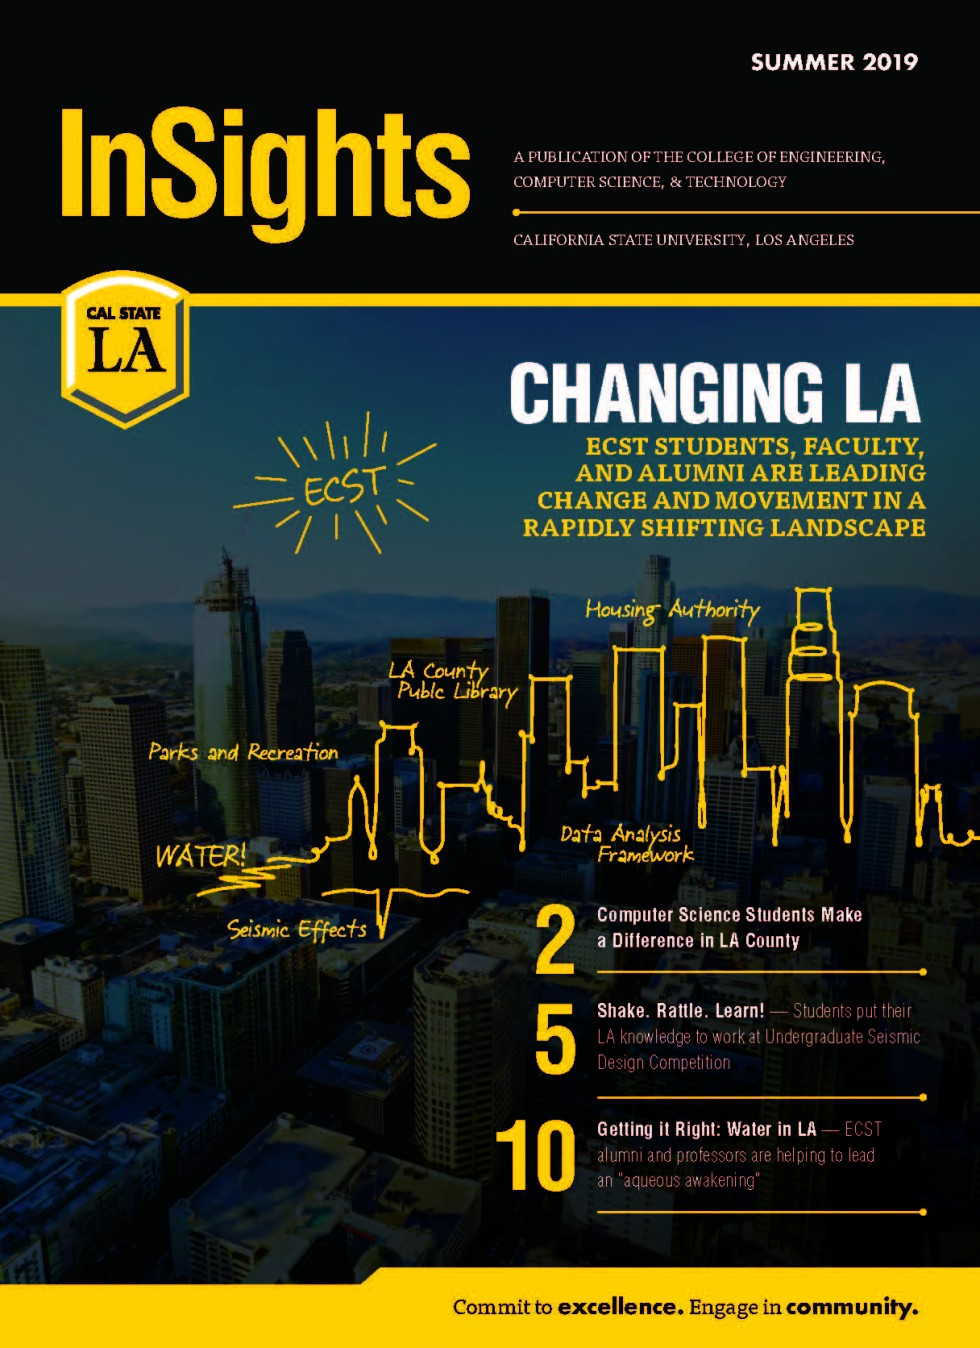 InSights Summer 2019